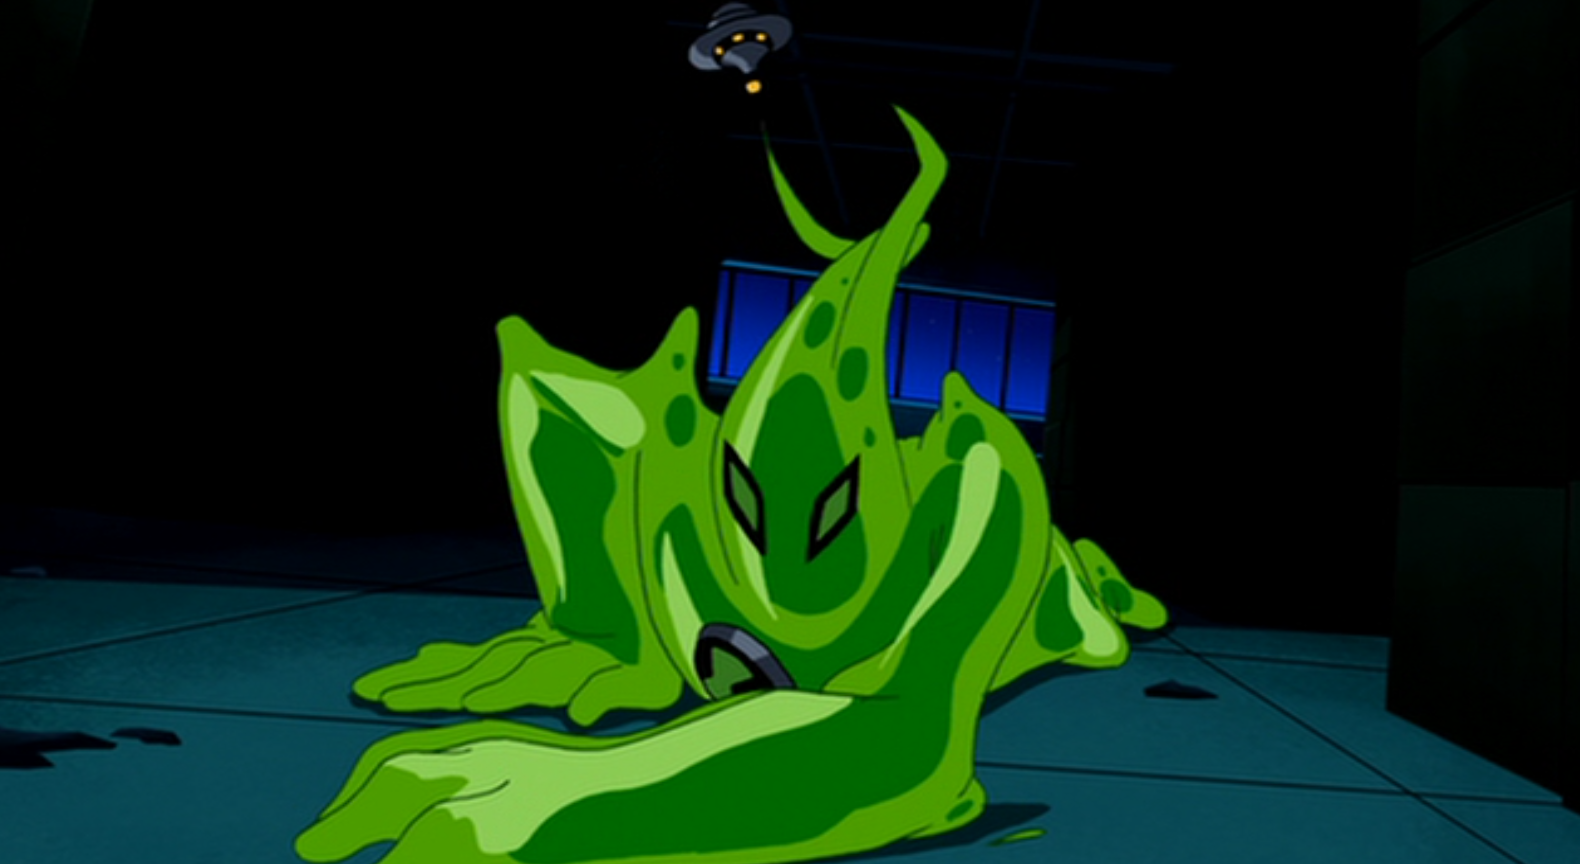 zsskayrs minions ben 10 wiki fandom powered by wikia - HD 1580×864